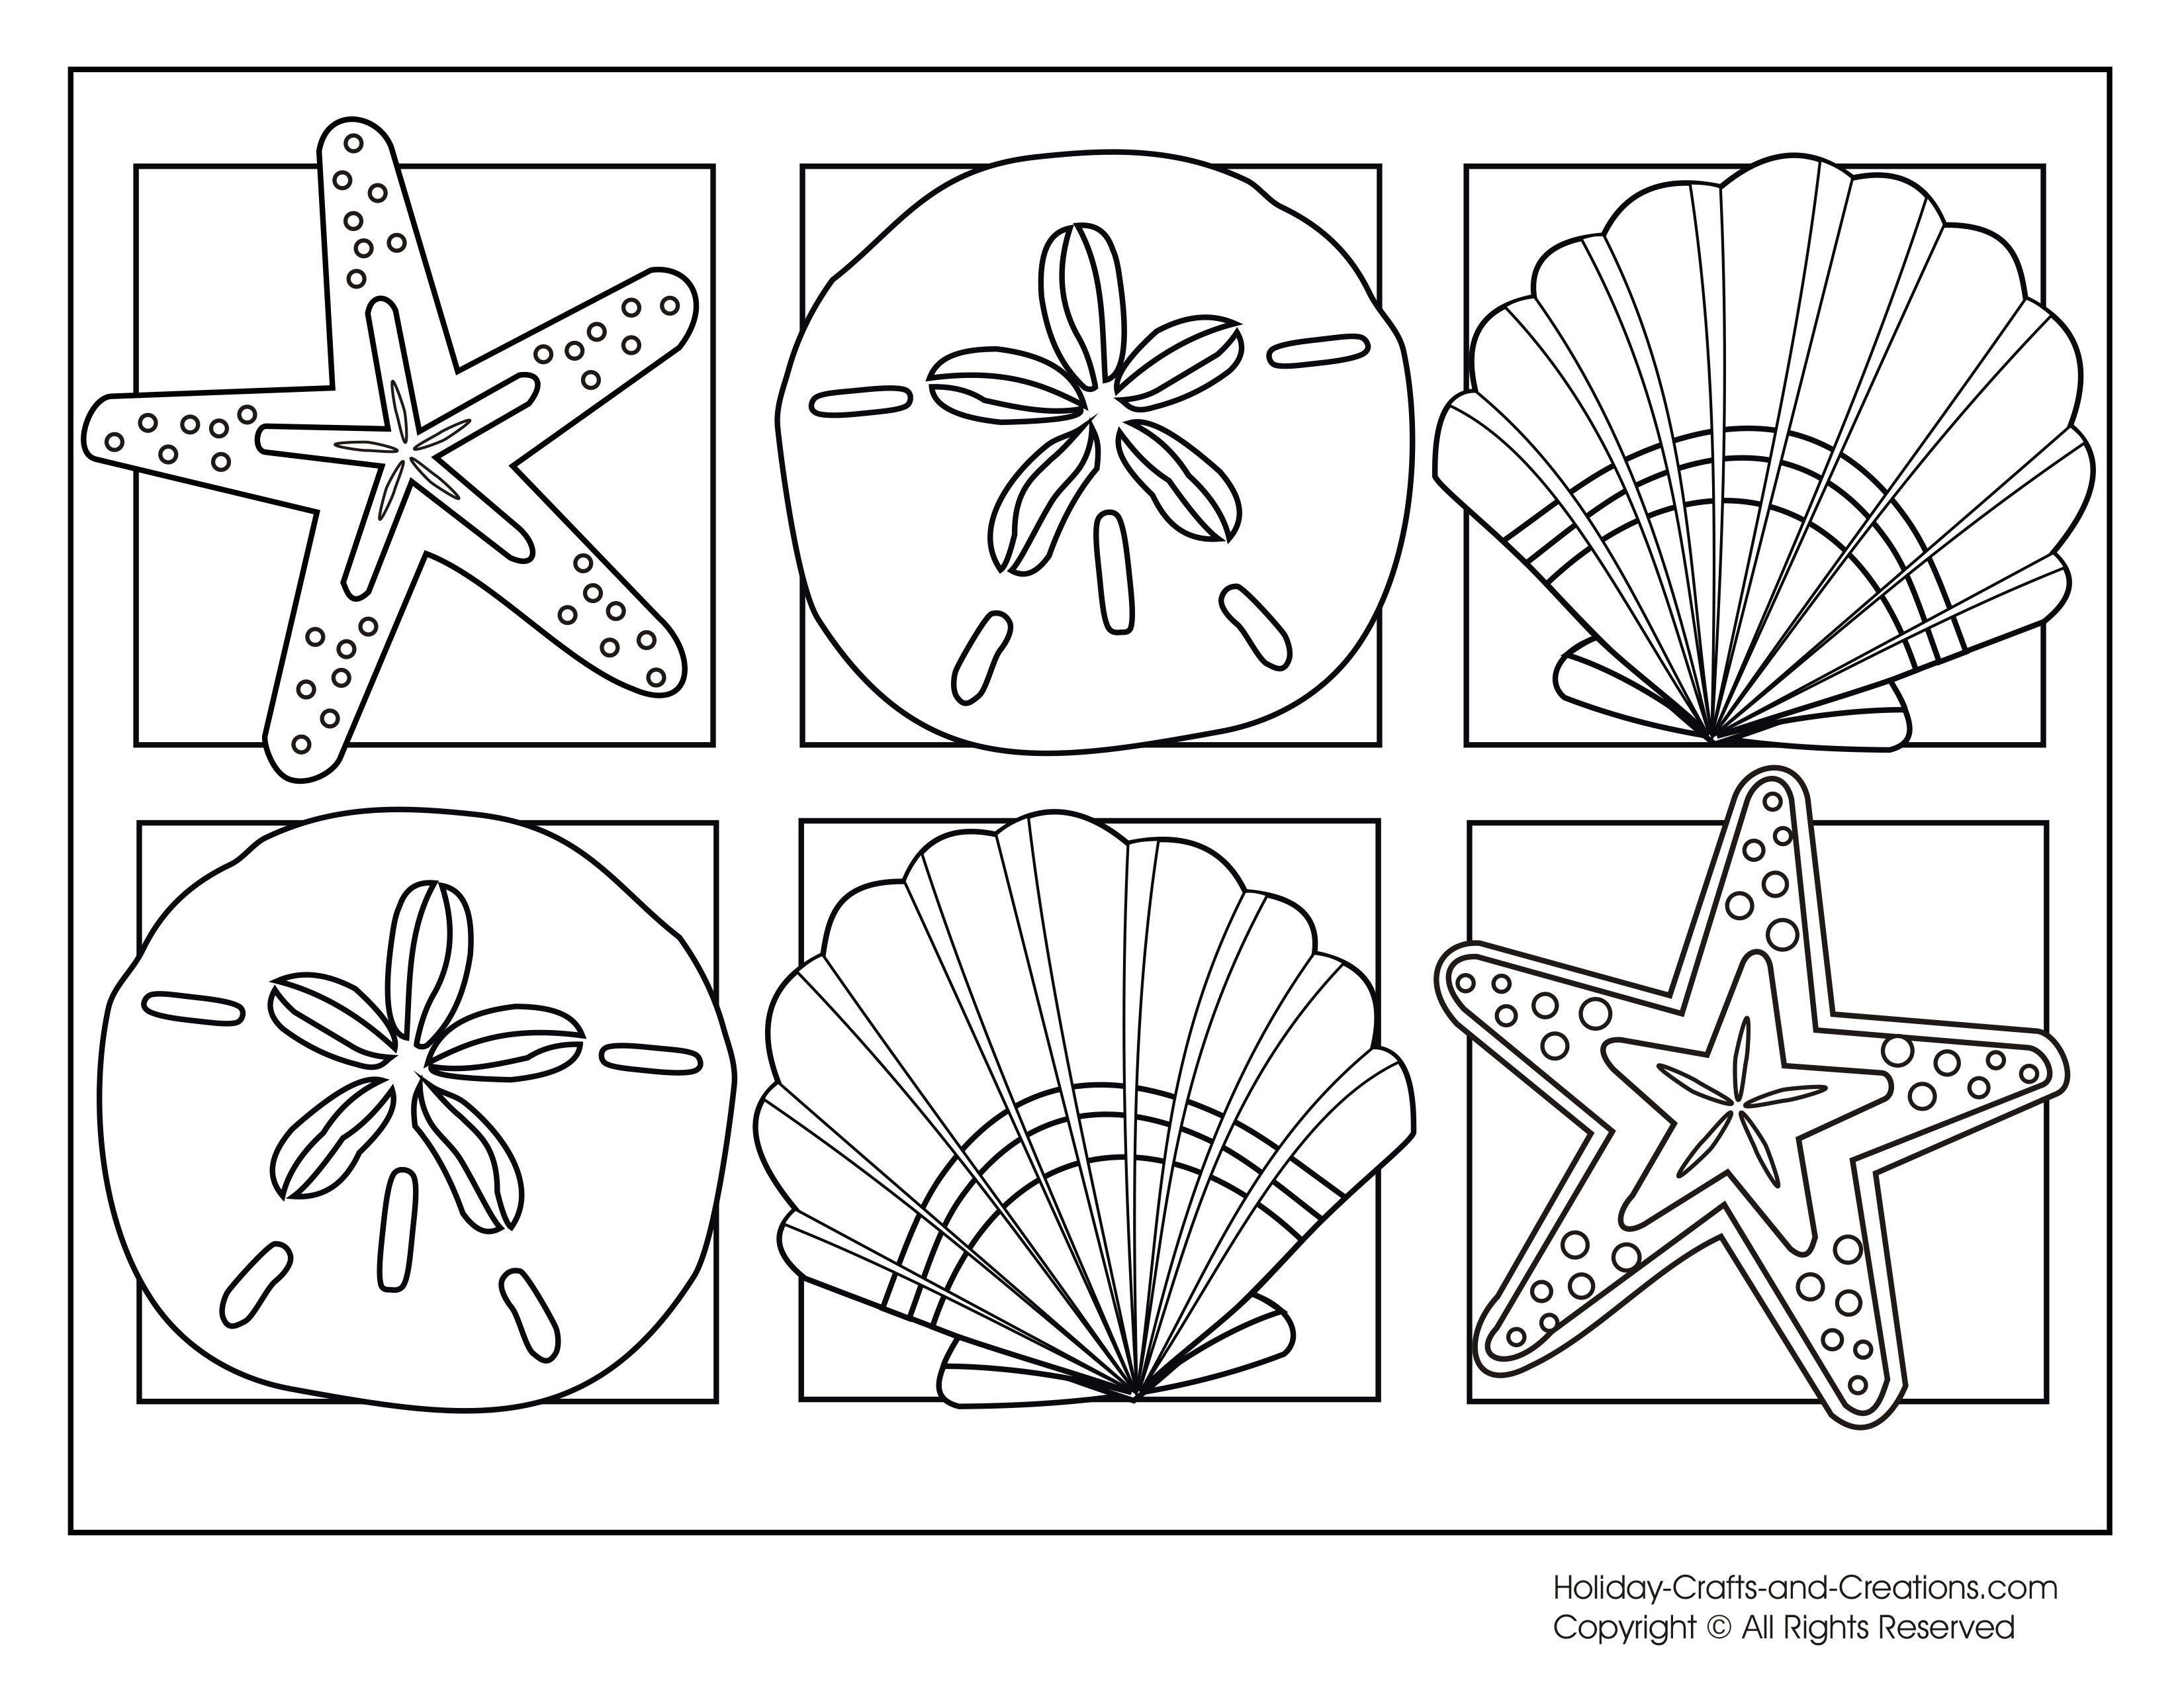 Seashells Coloring Page | Summer coloring pages